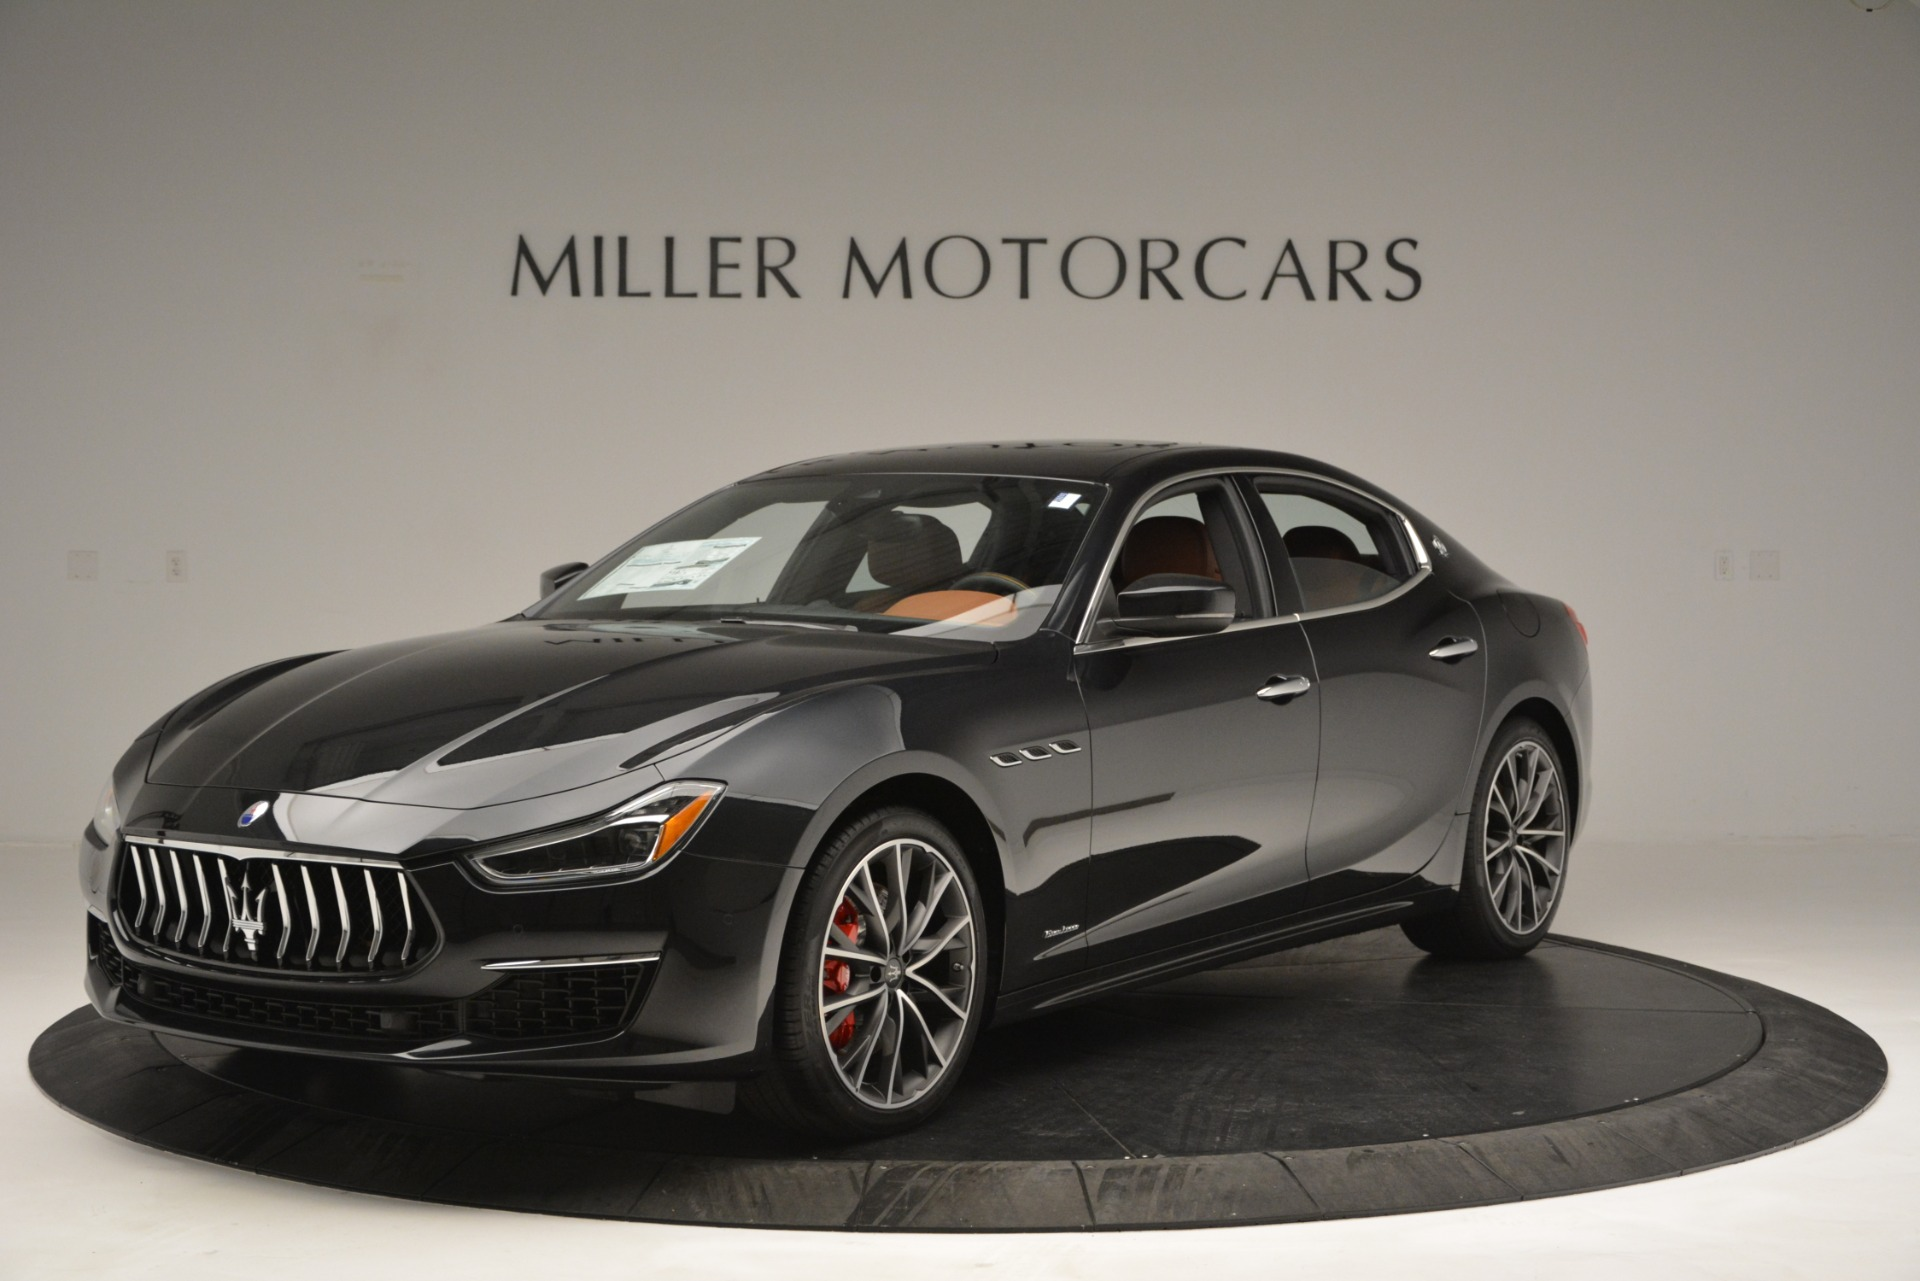 New 2019 Maserati Ghibli S Q4 GranLusso For Sale In Greenwich, CT. Alfa Romeo of Greenwich, M2222 2589_p2